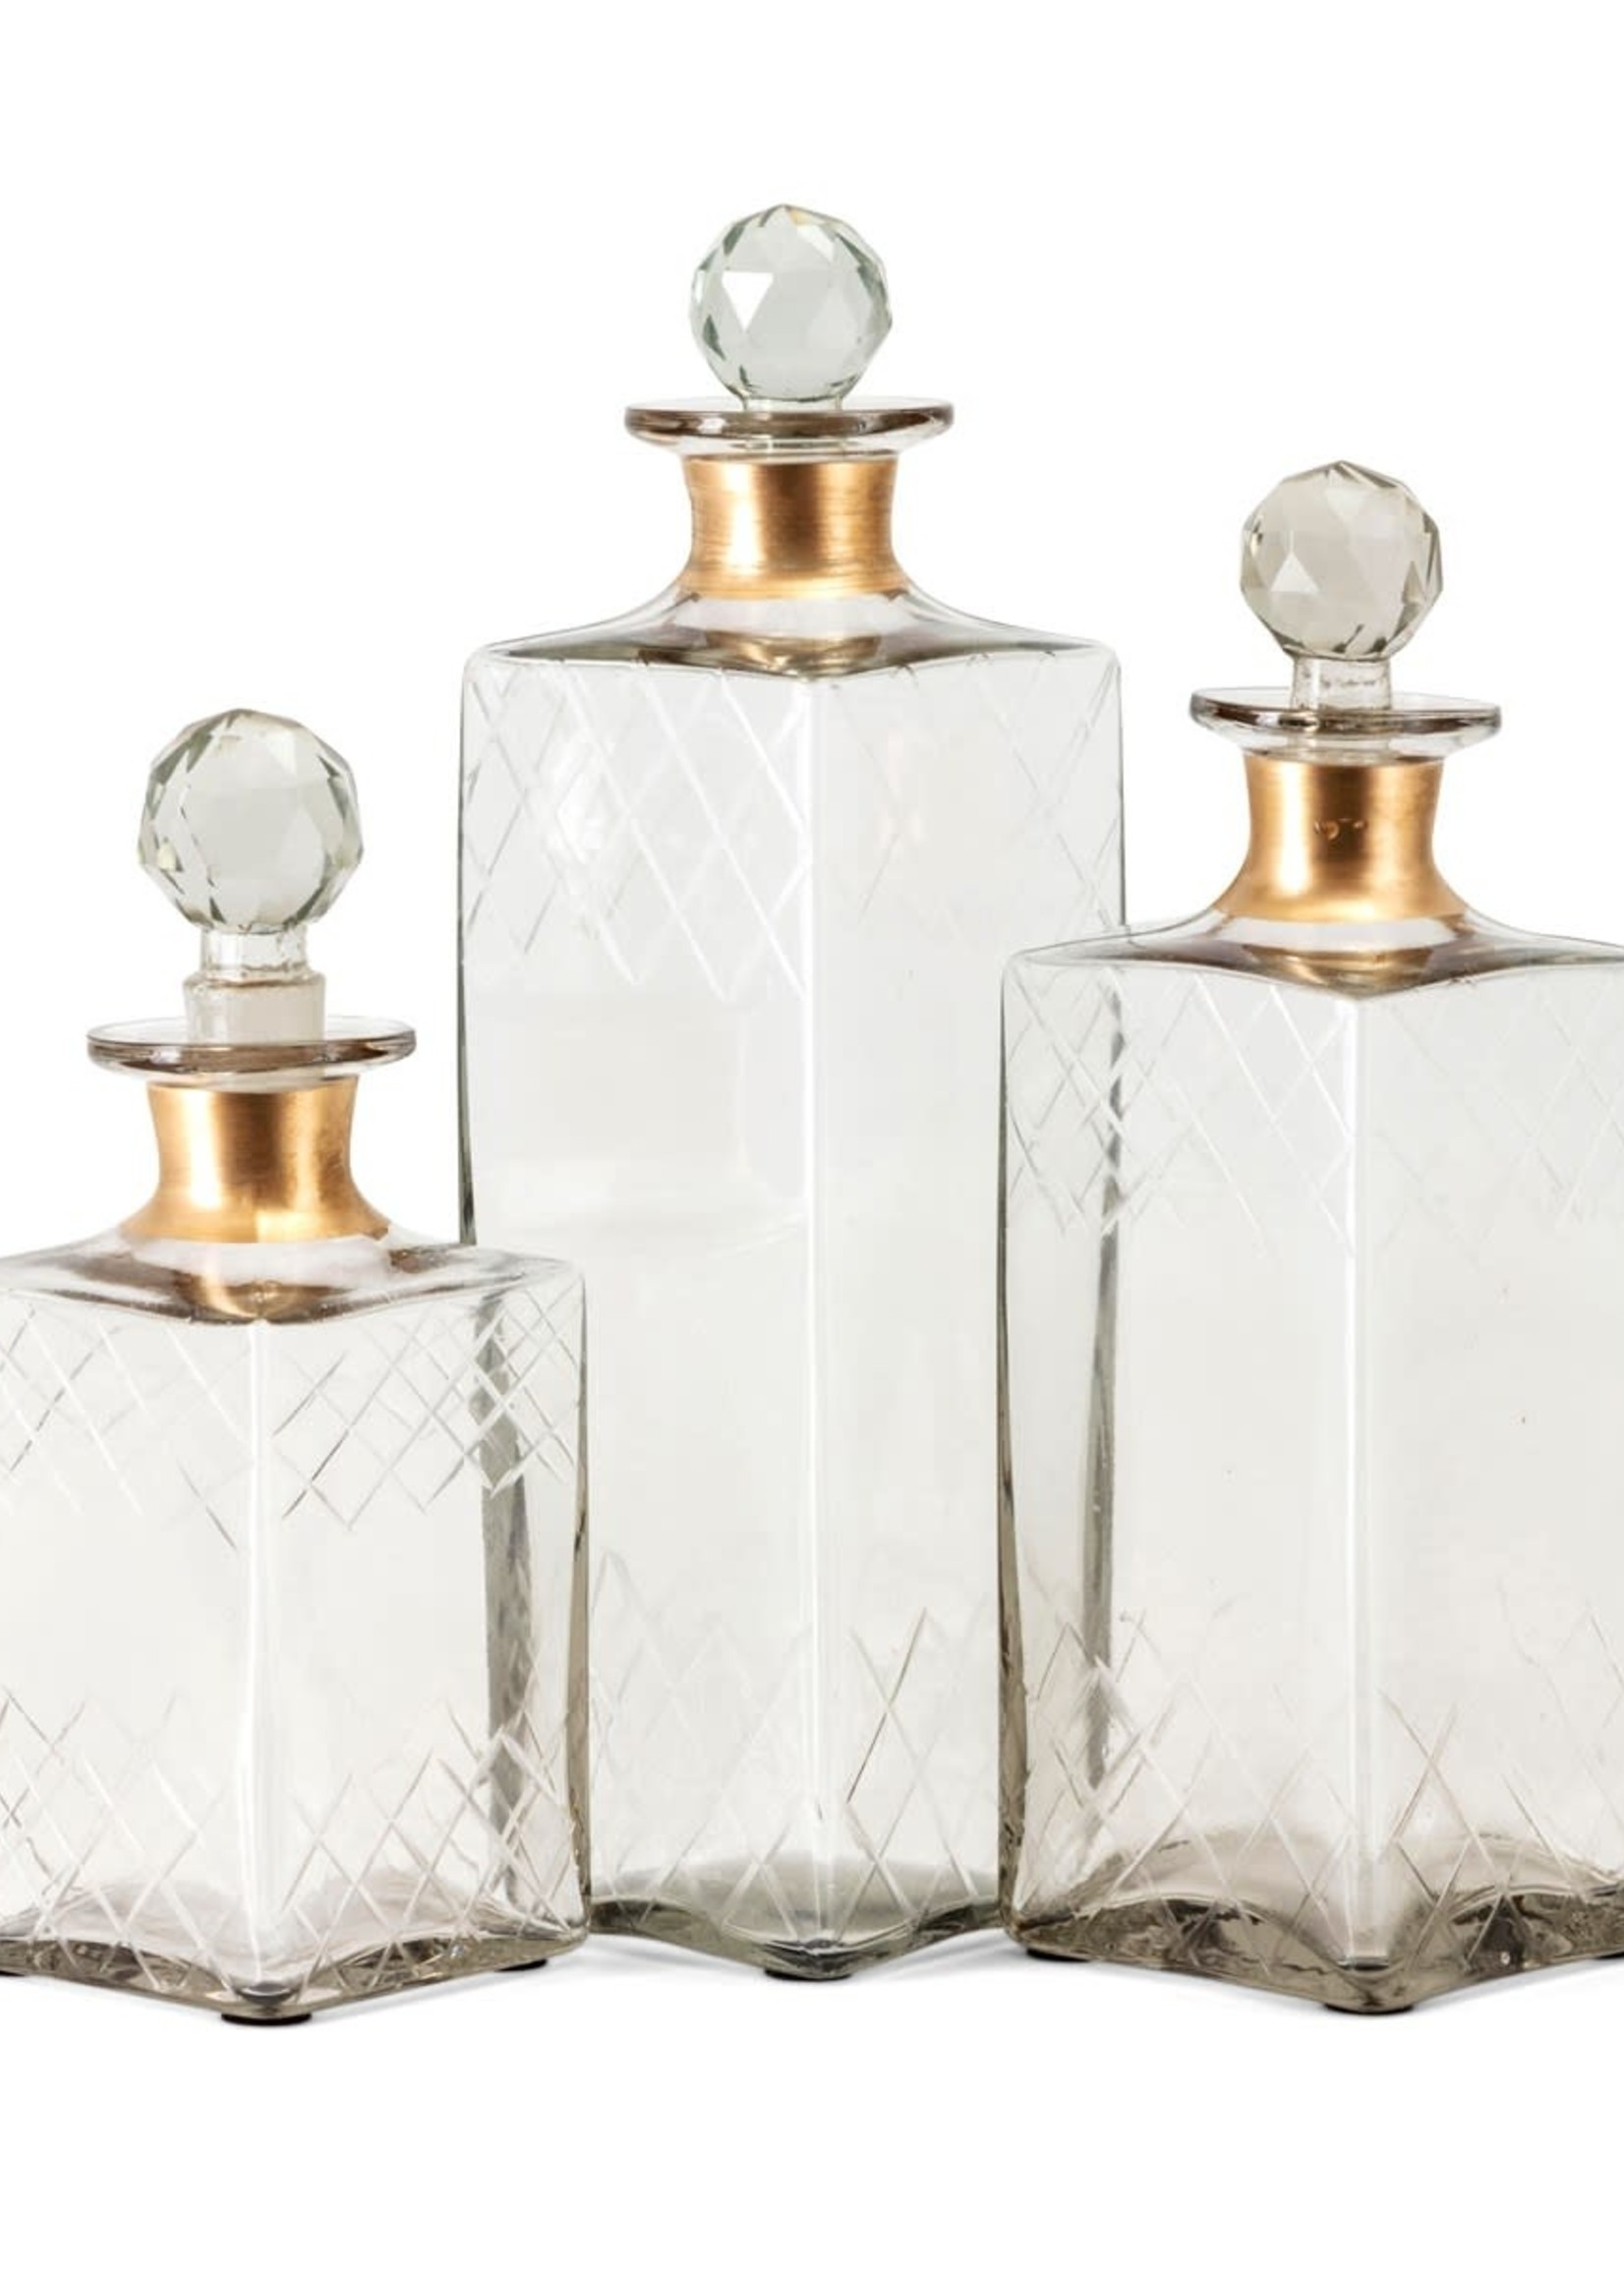 Hampshire Etched Decanters, Small